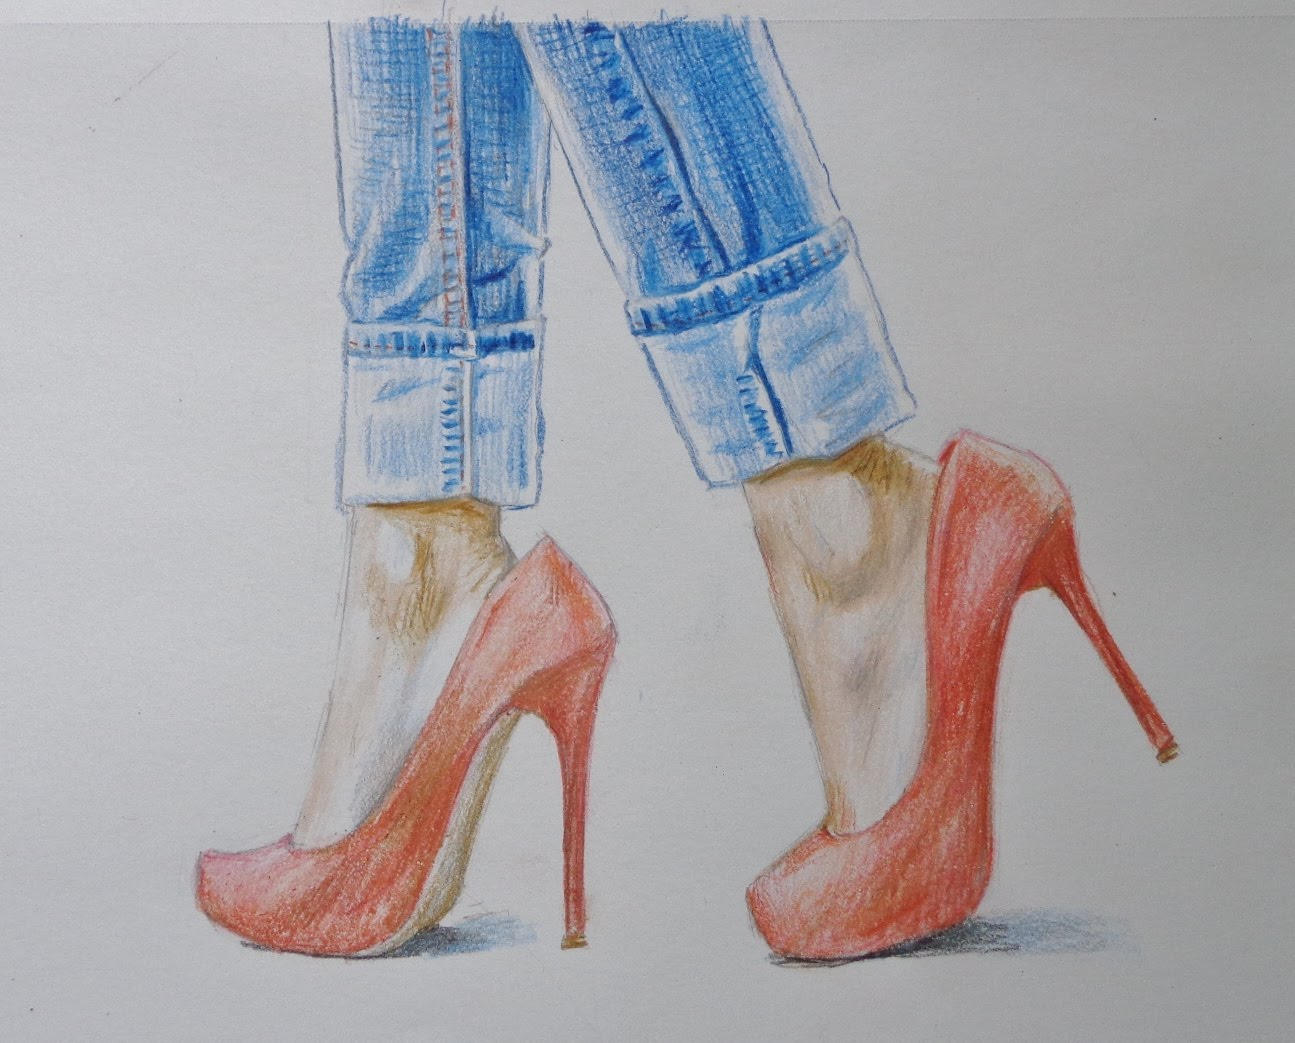 1295x1043 In This Video, I Am Going To Draw Feet In Red High Heels And Blue